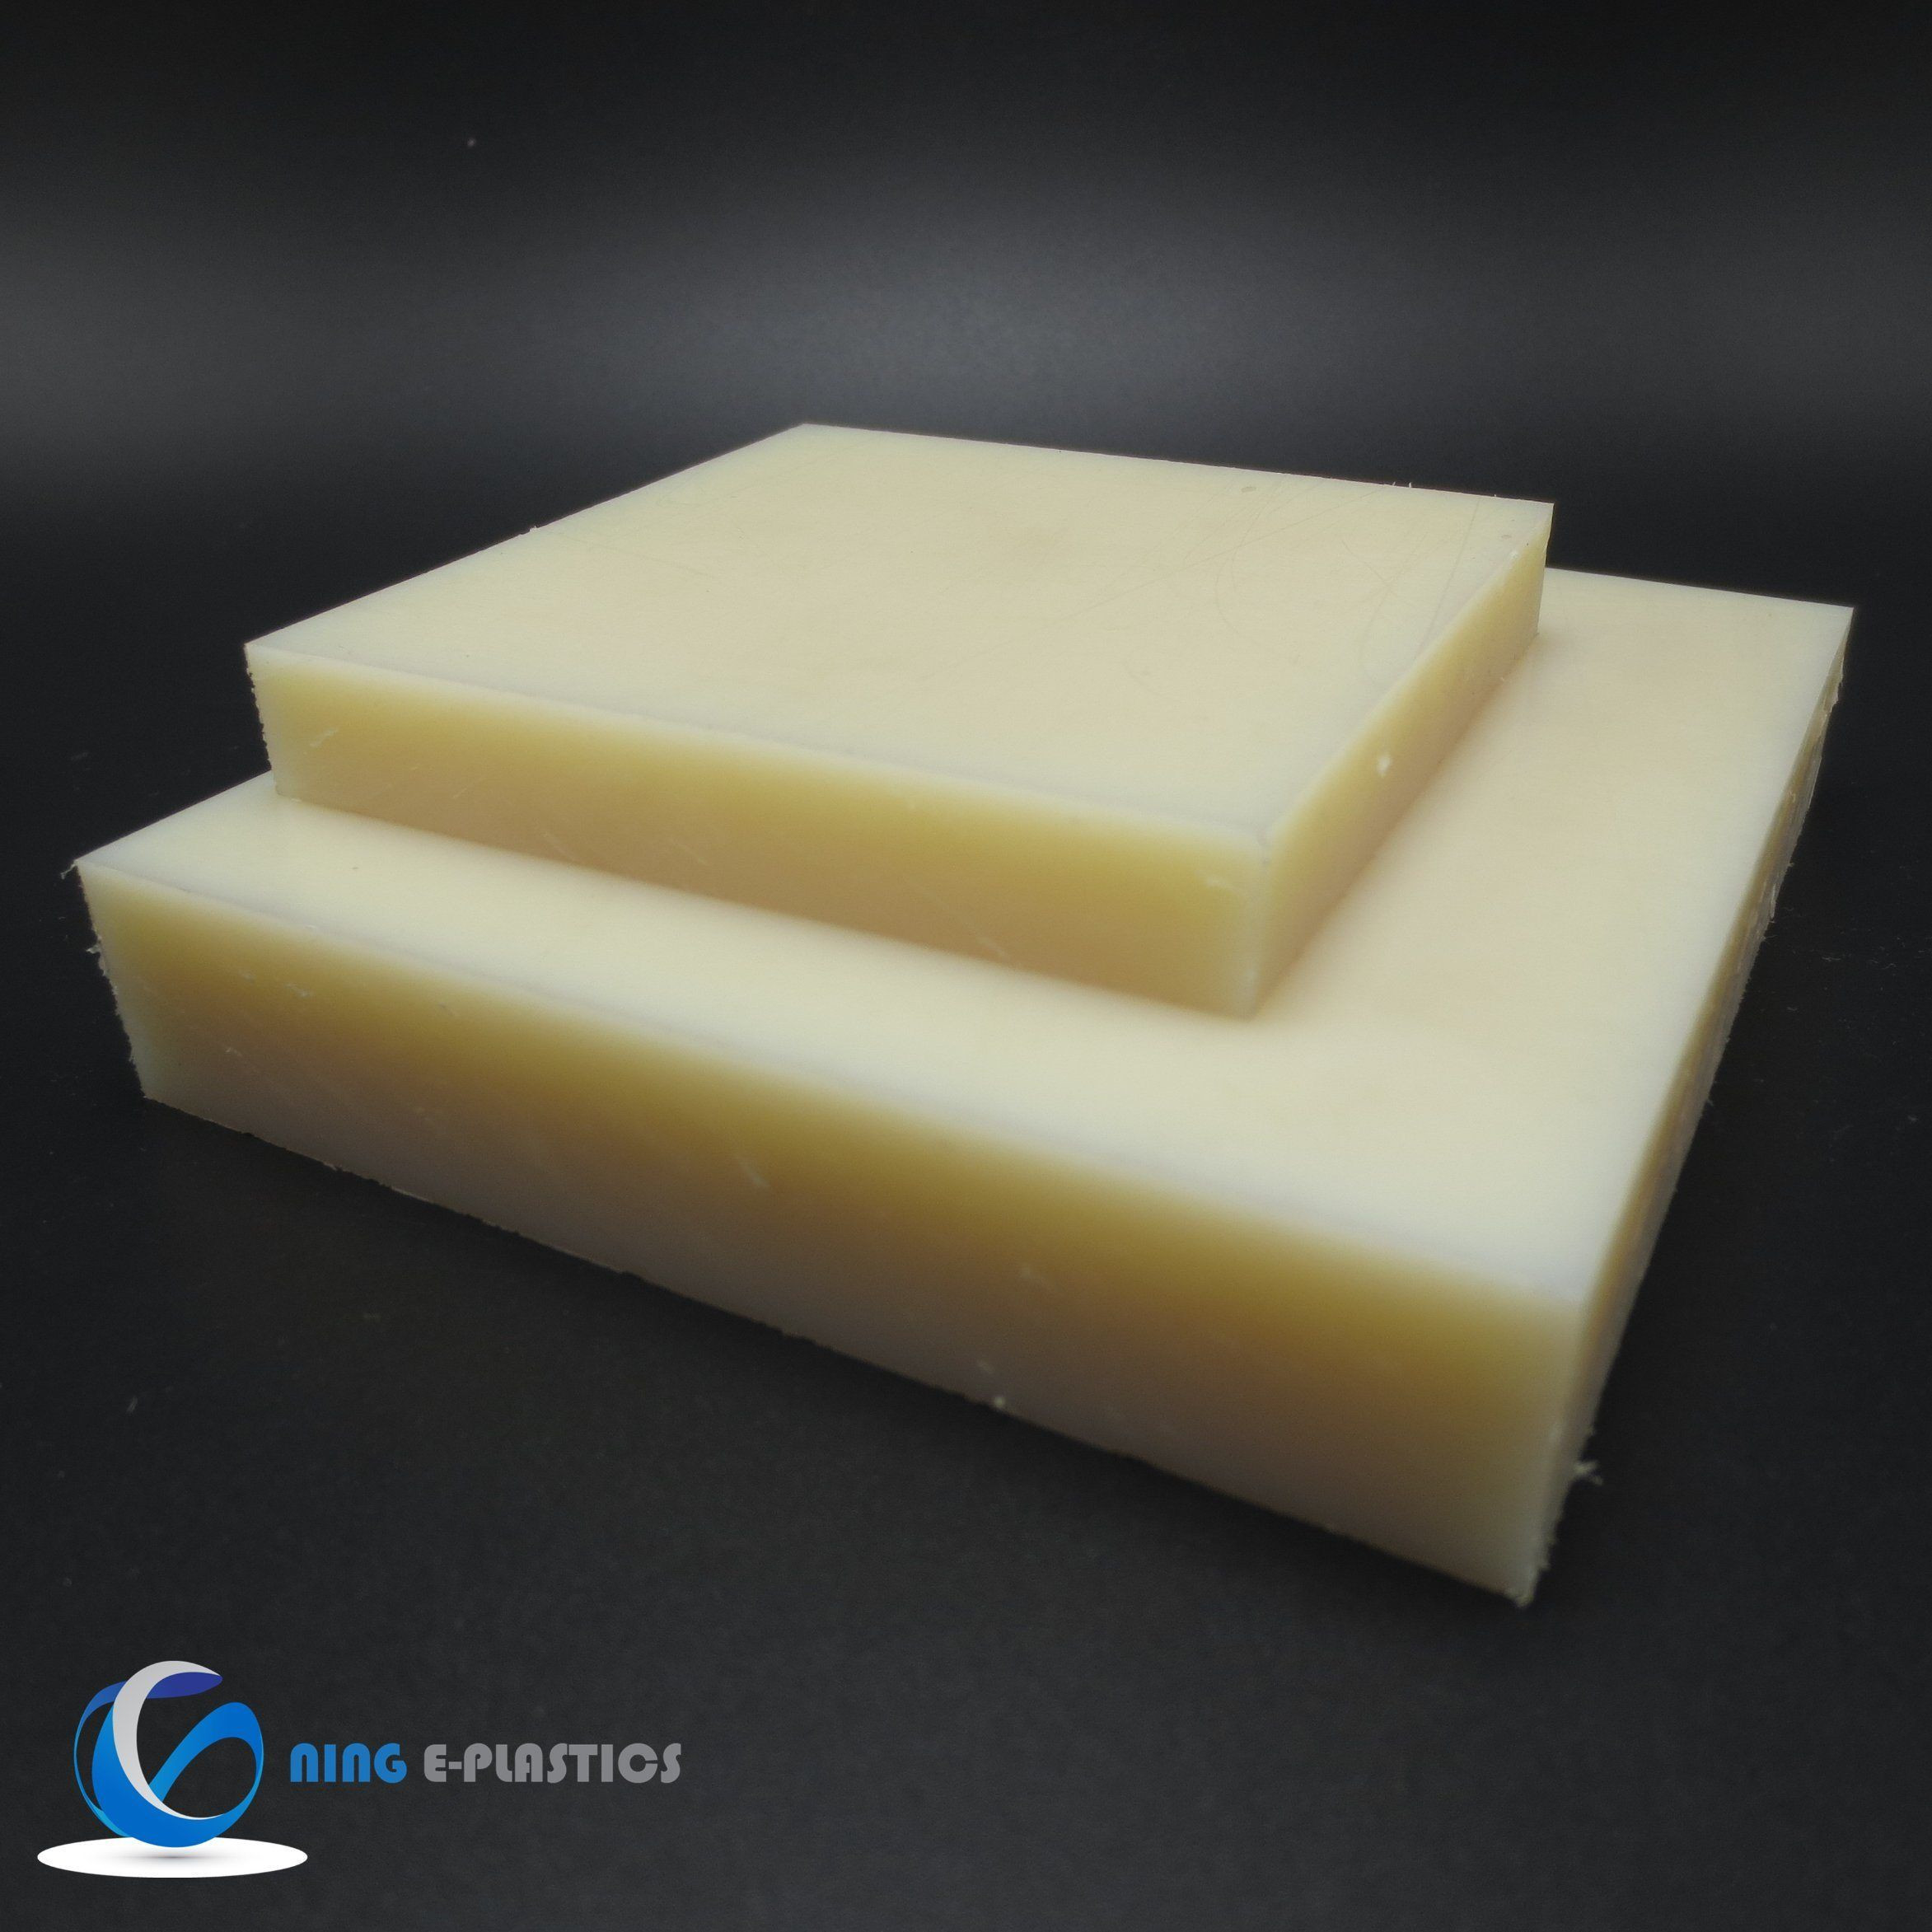 Cast Polyamide Sheet with Natural Colour